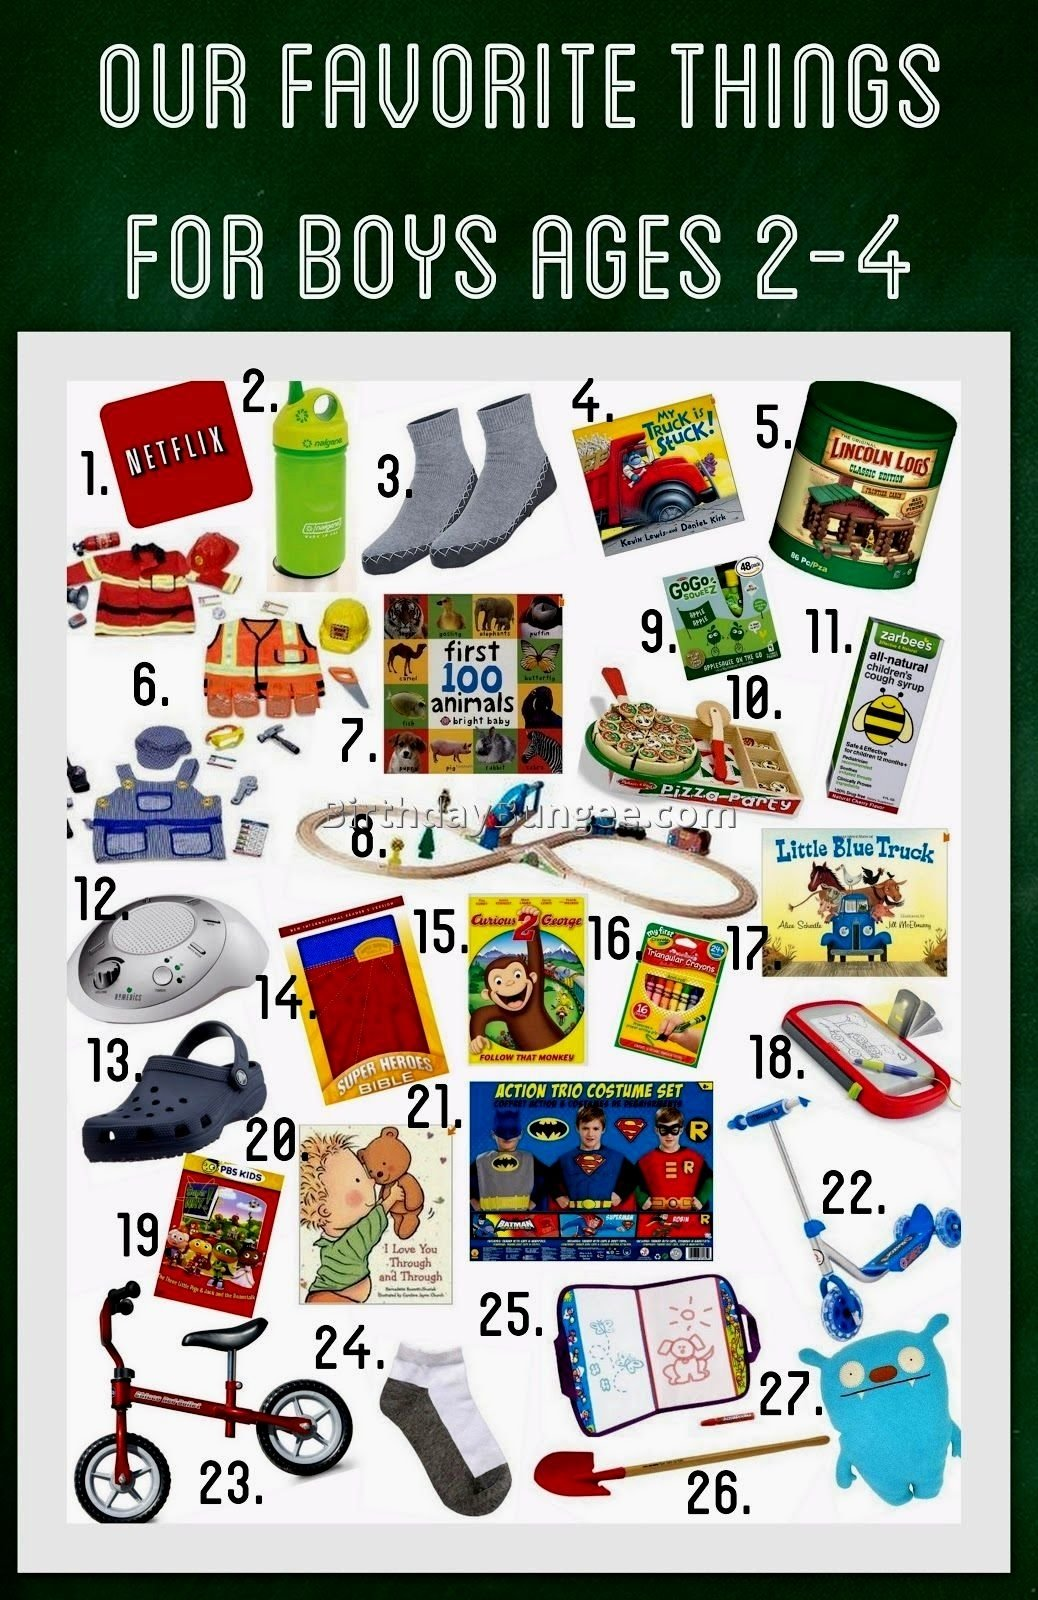 10 Wonderful Birthday Gift Ideas For 12 Year Old Boy Good Gifts